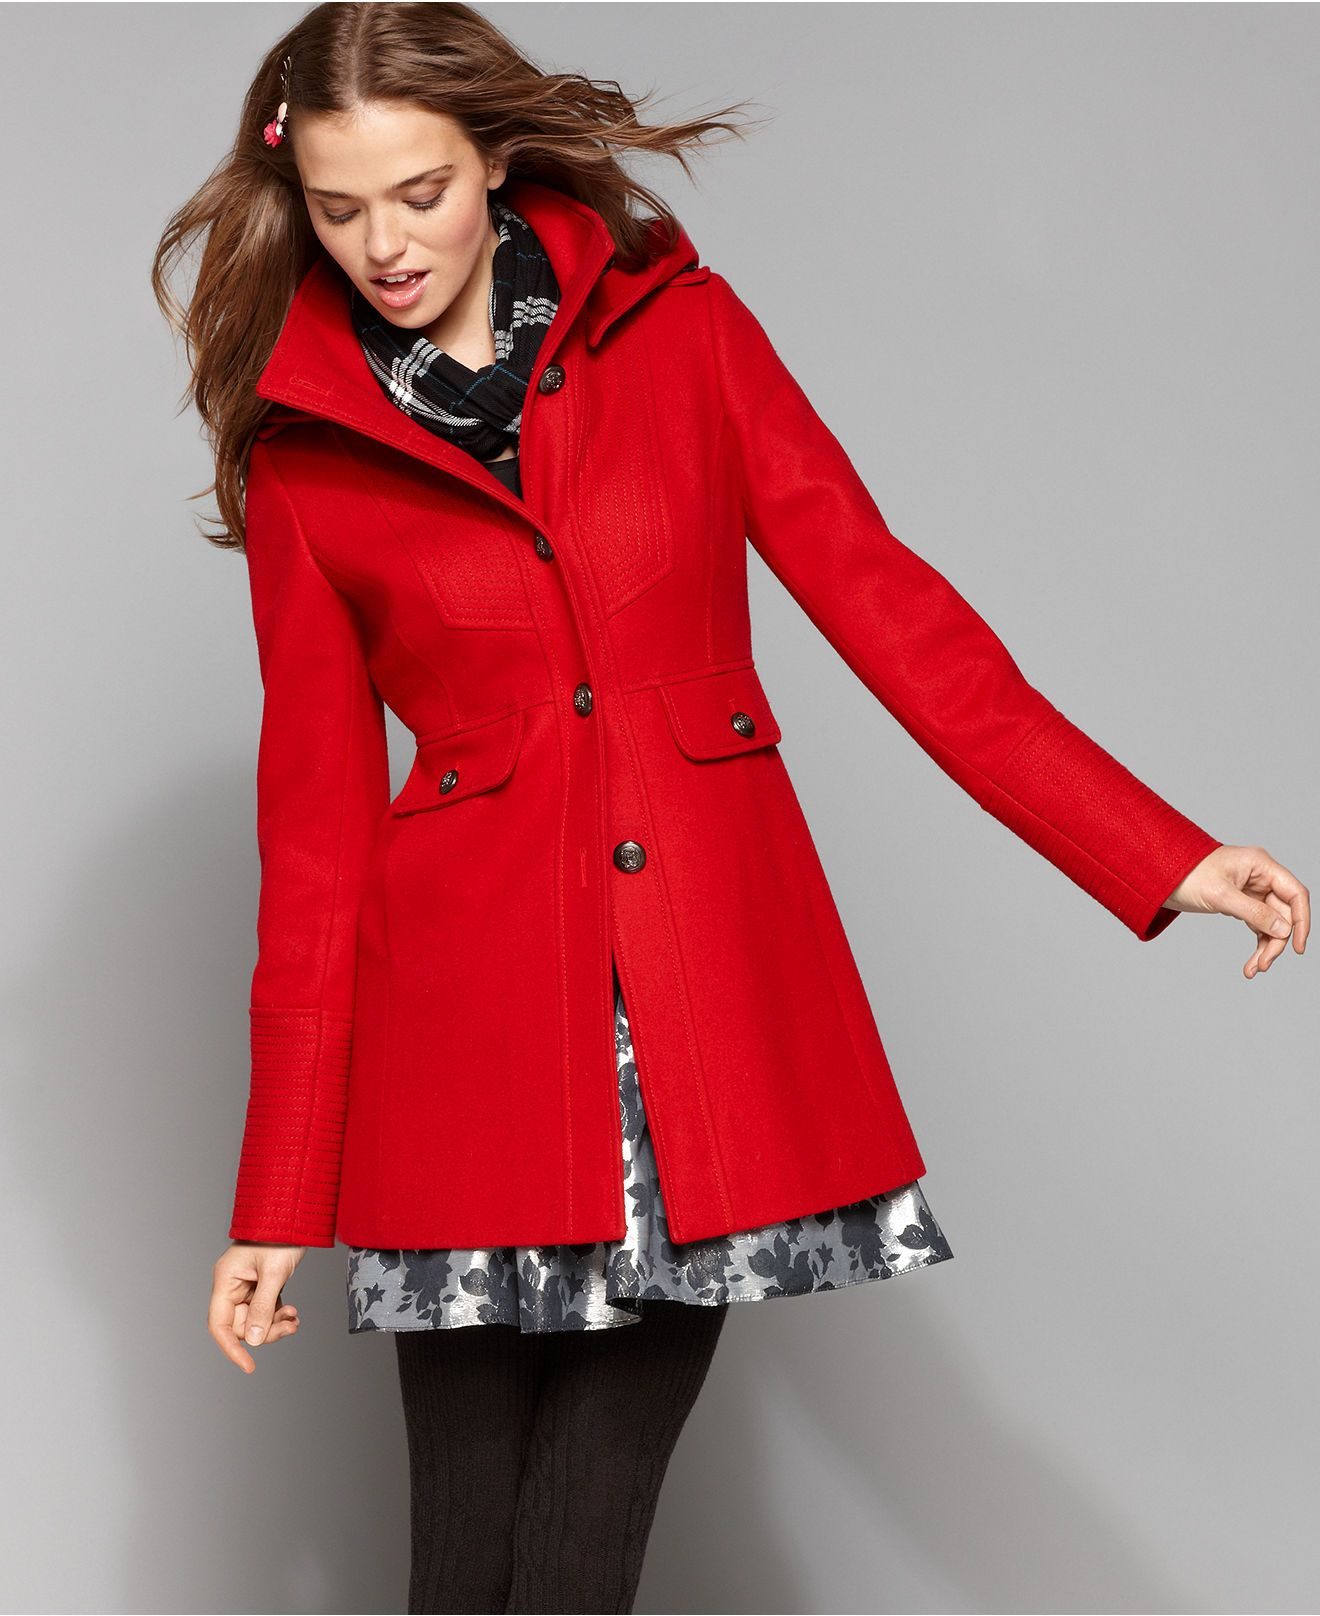 Guess Coat Hooded Topstitched Wool Blend Red Wool Coat Wool Blend Coat Coats For Women [ 1616 x 1320 Pixel ]